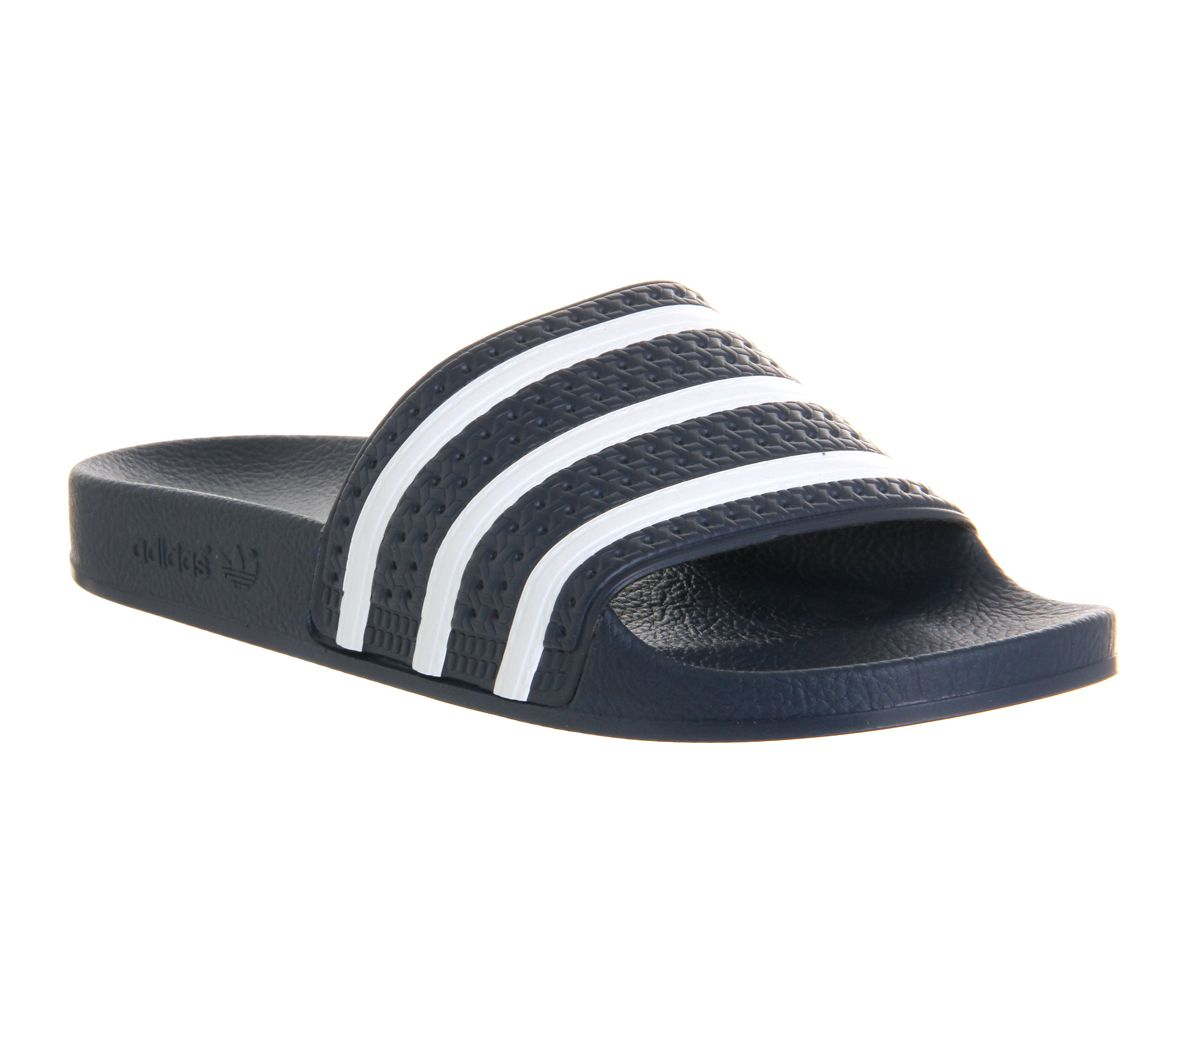 huge selection of 2c123 181bf adidas Adilette Sliders Navy White - Sandals